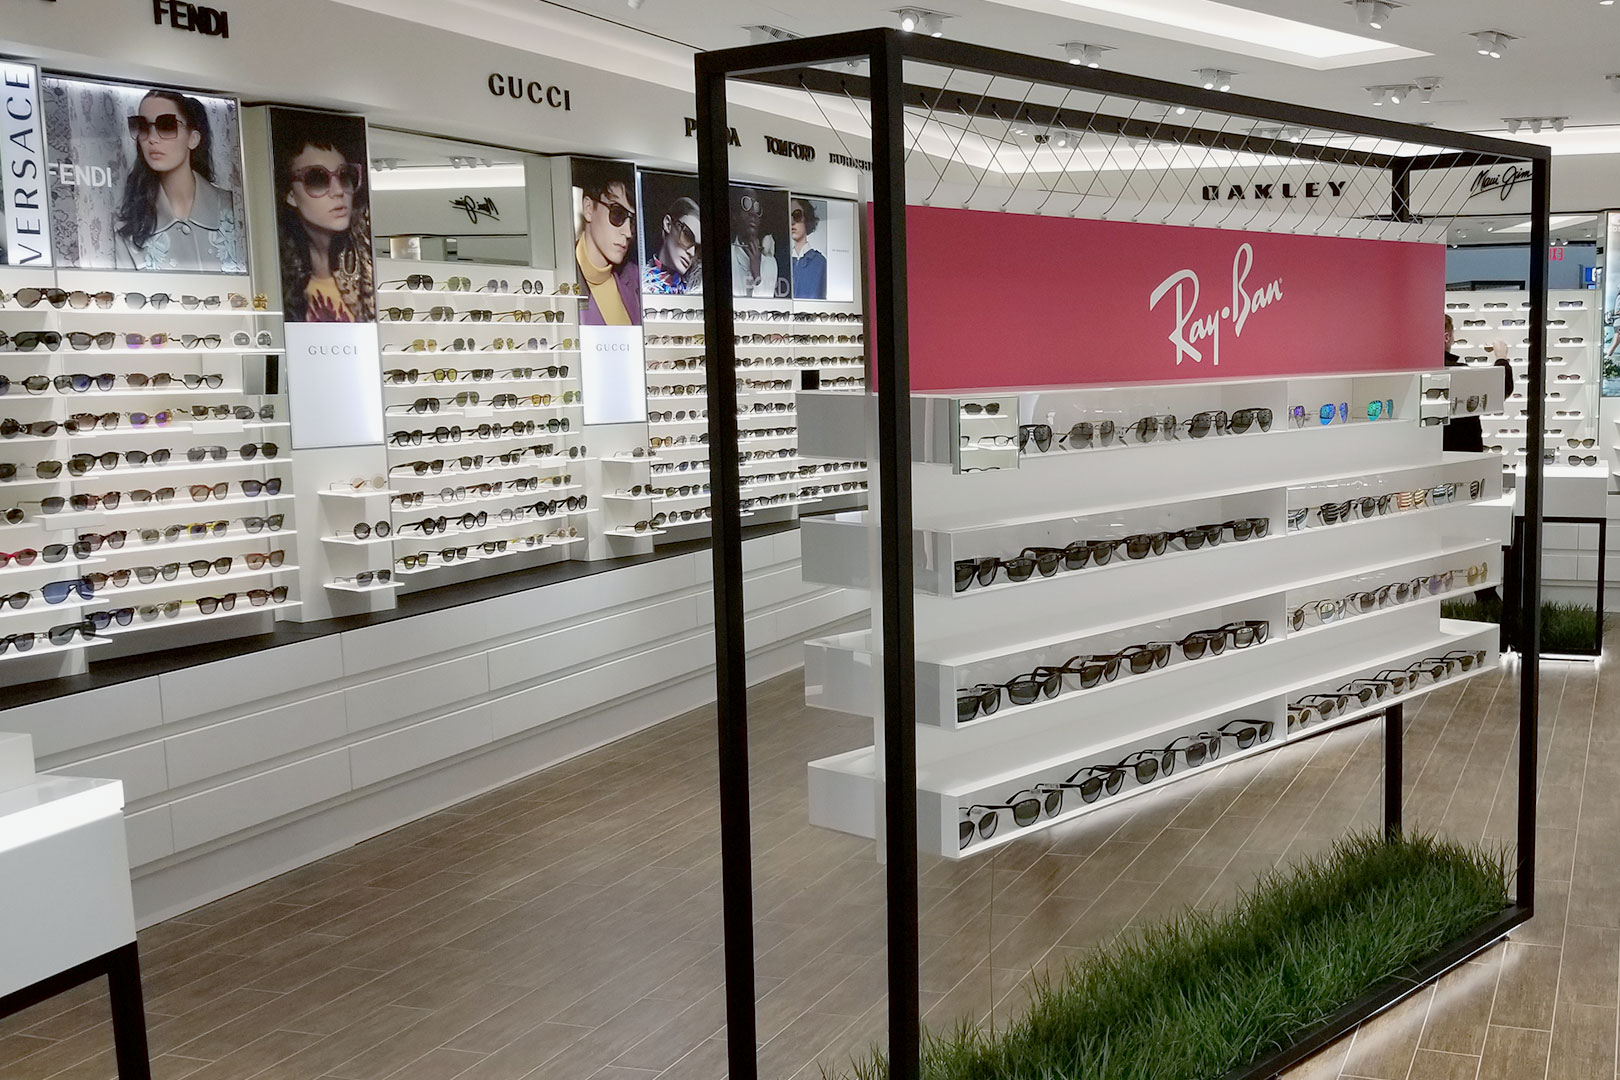 5th and Sunset Luxury Eyewaer Free Standing Displays